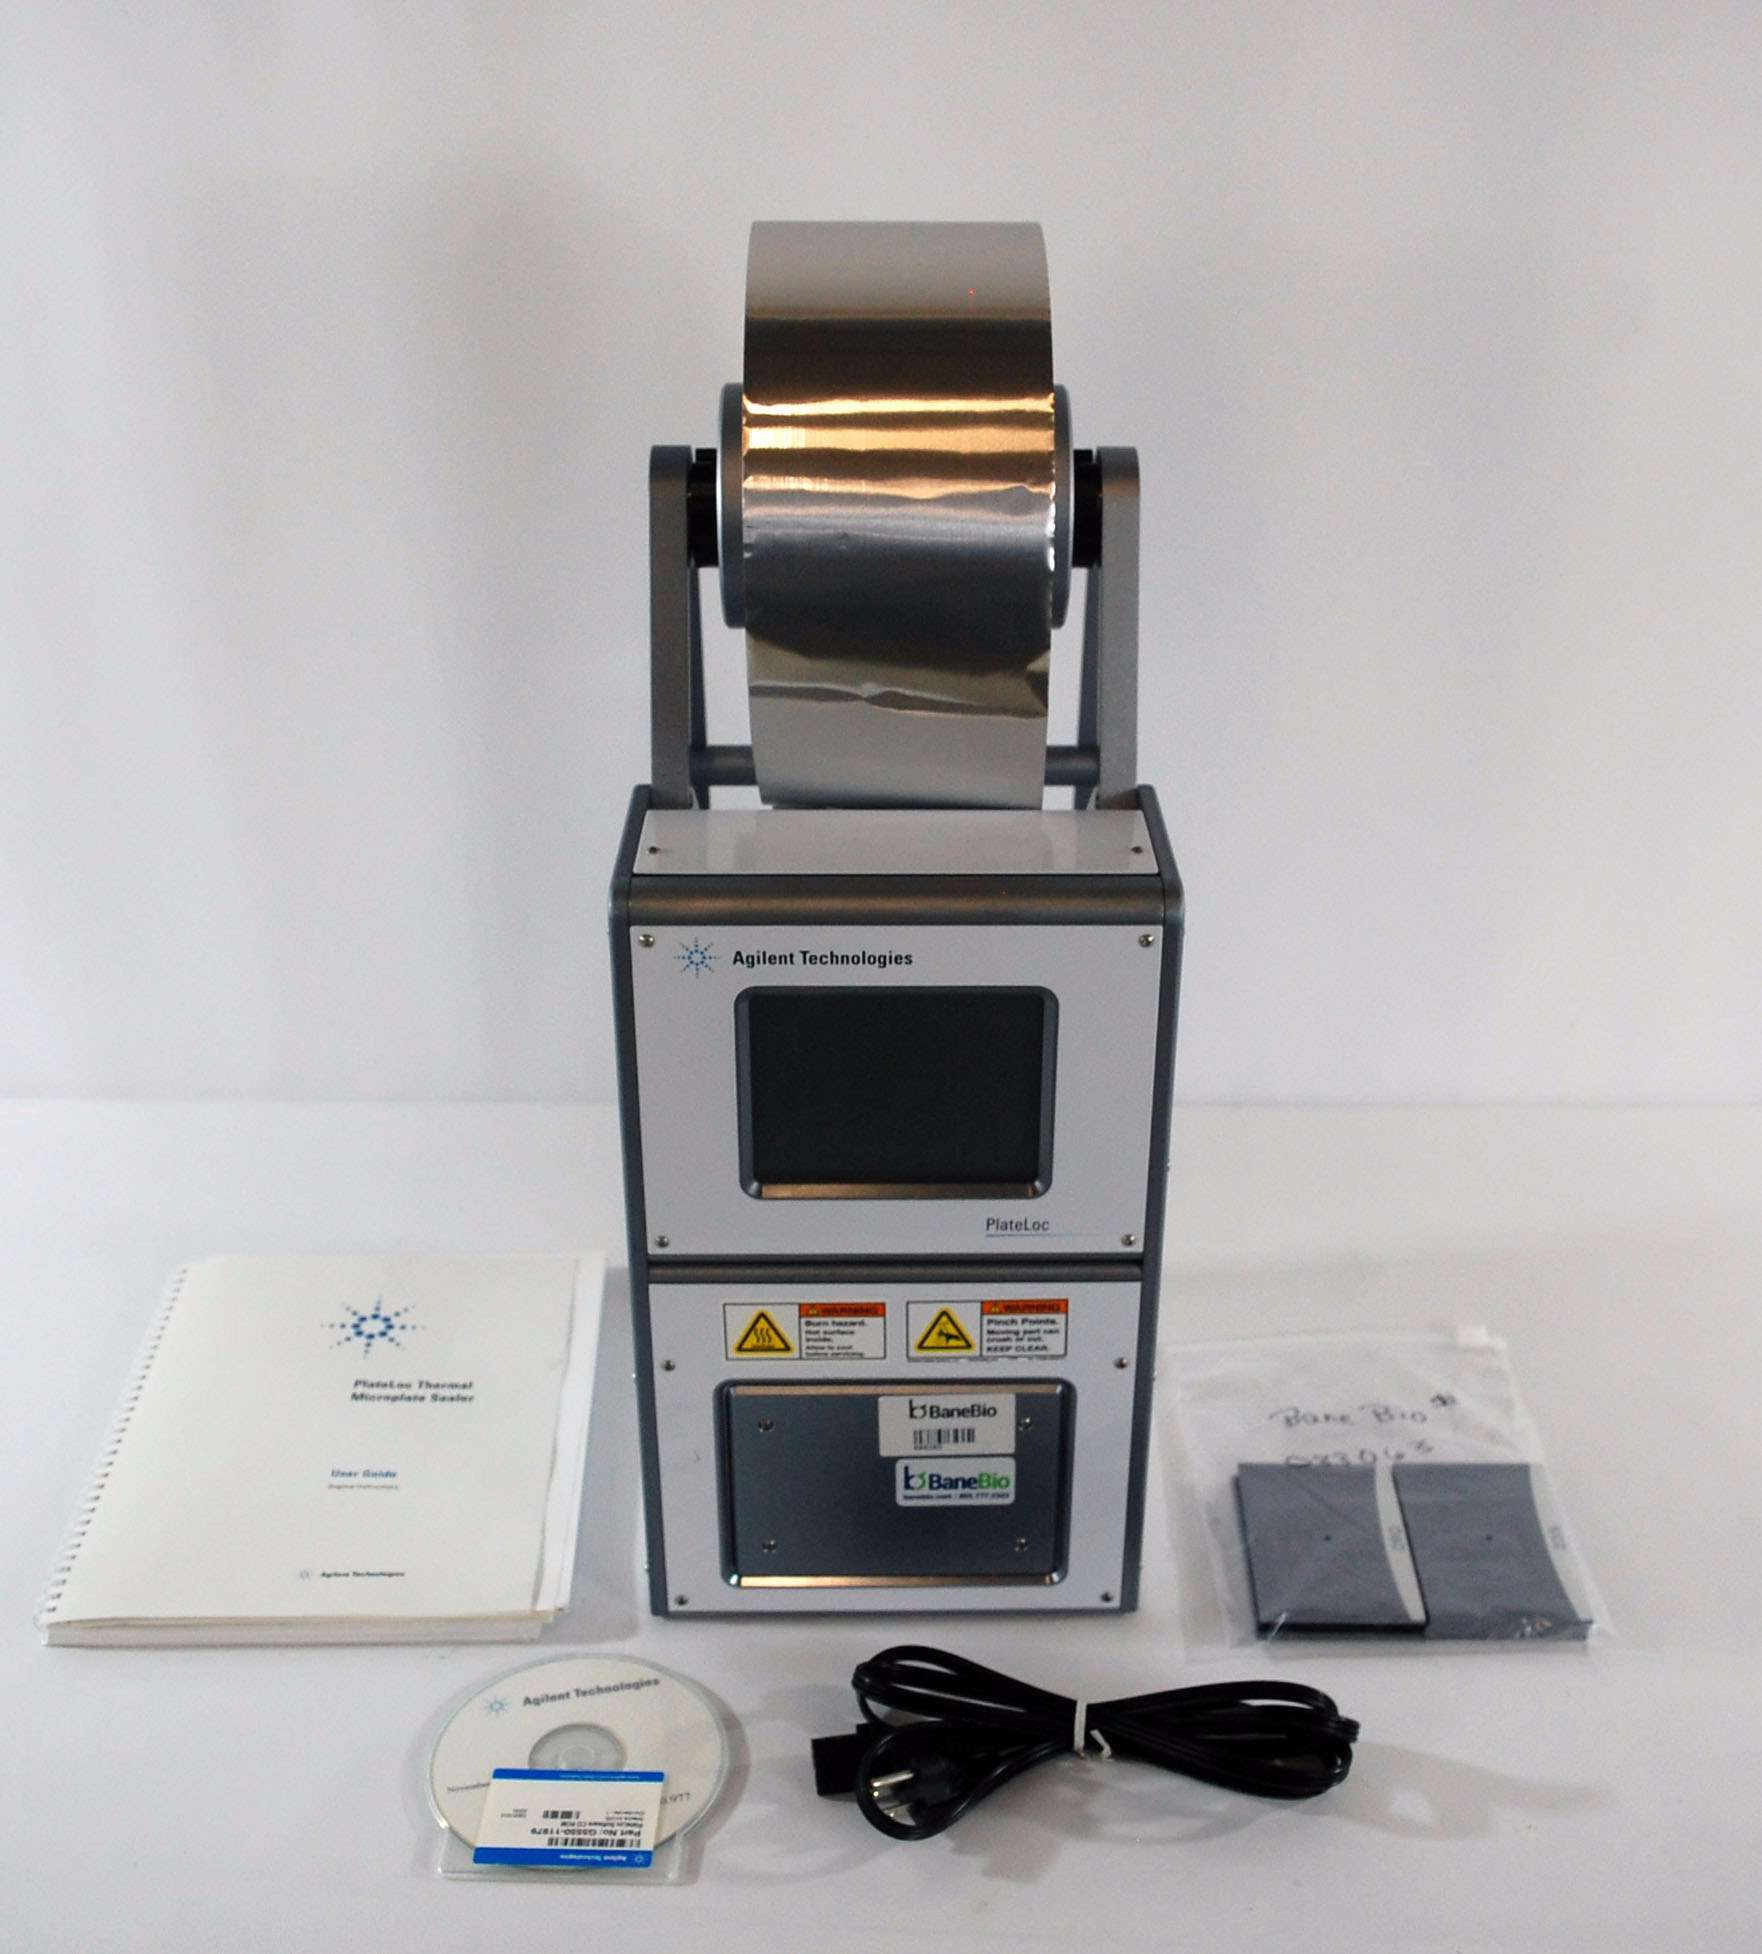 Agilent Technologies PlateLoc Thermal Microplate Sealer 01867-201